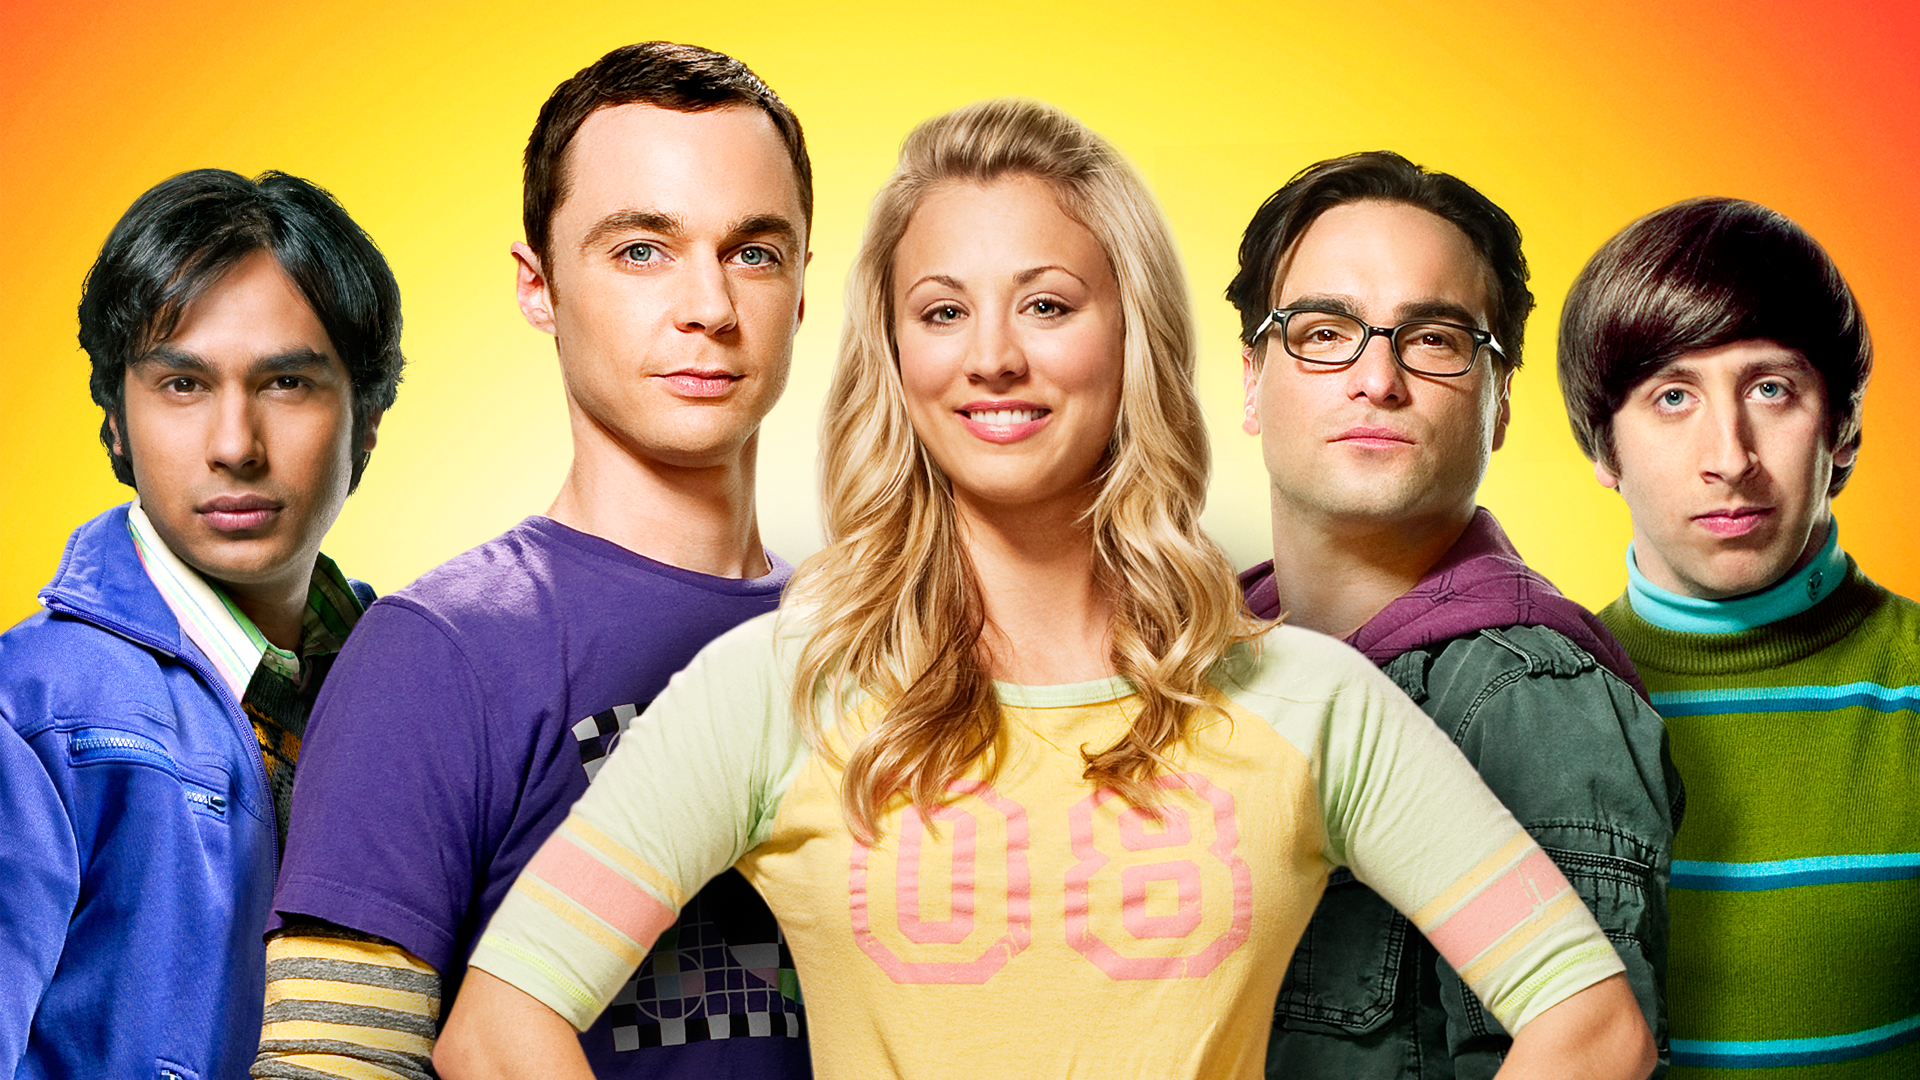 The Big Bang Theory Tbscom